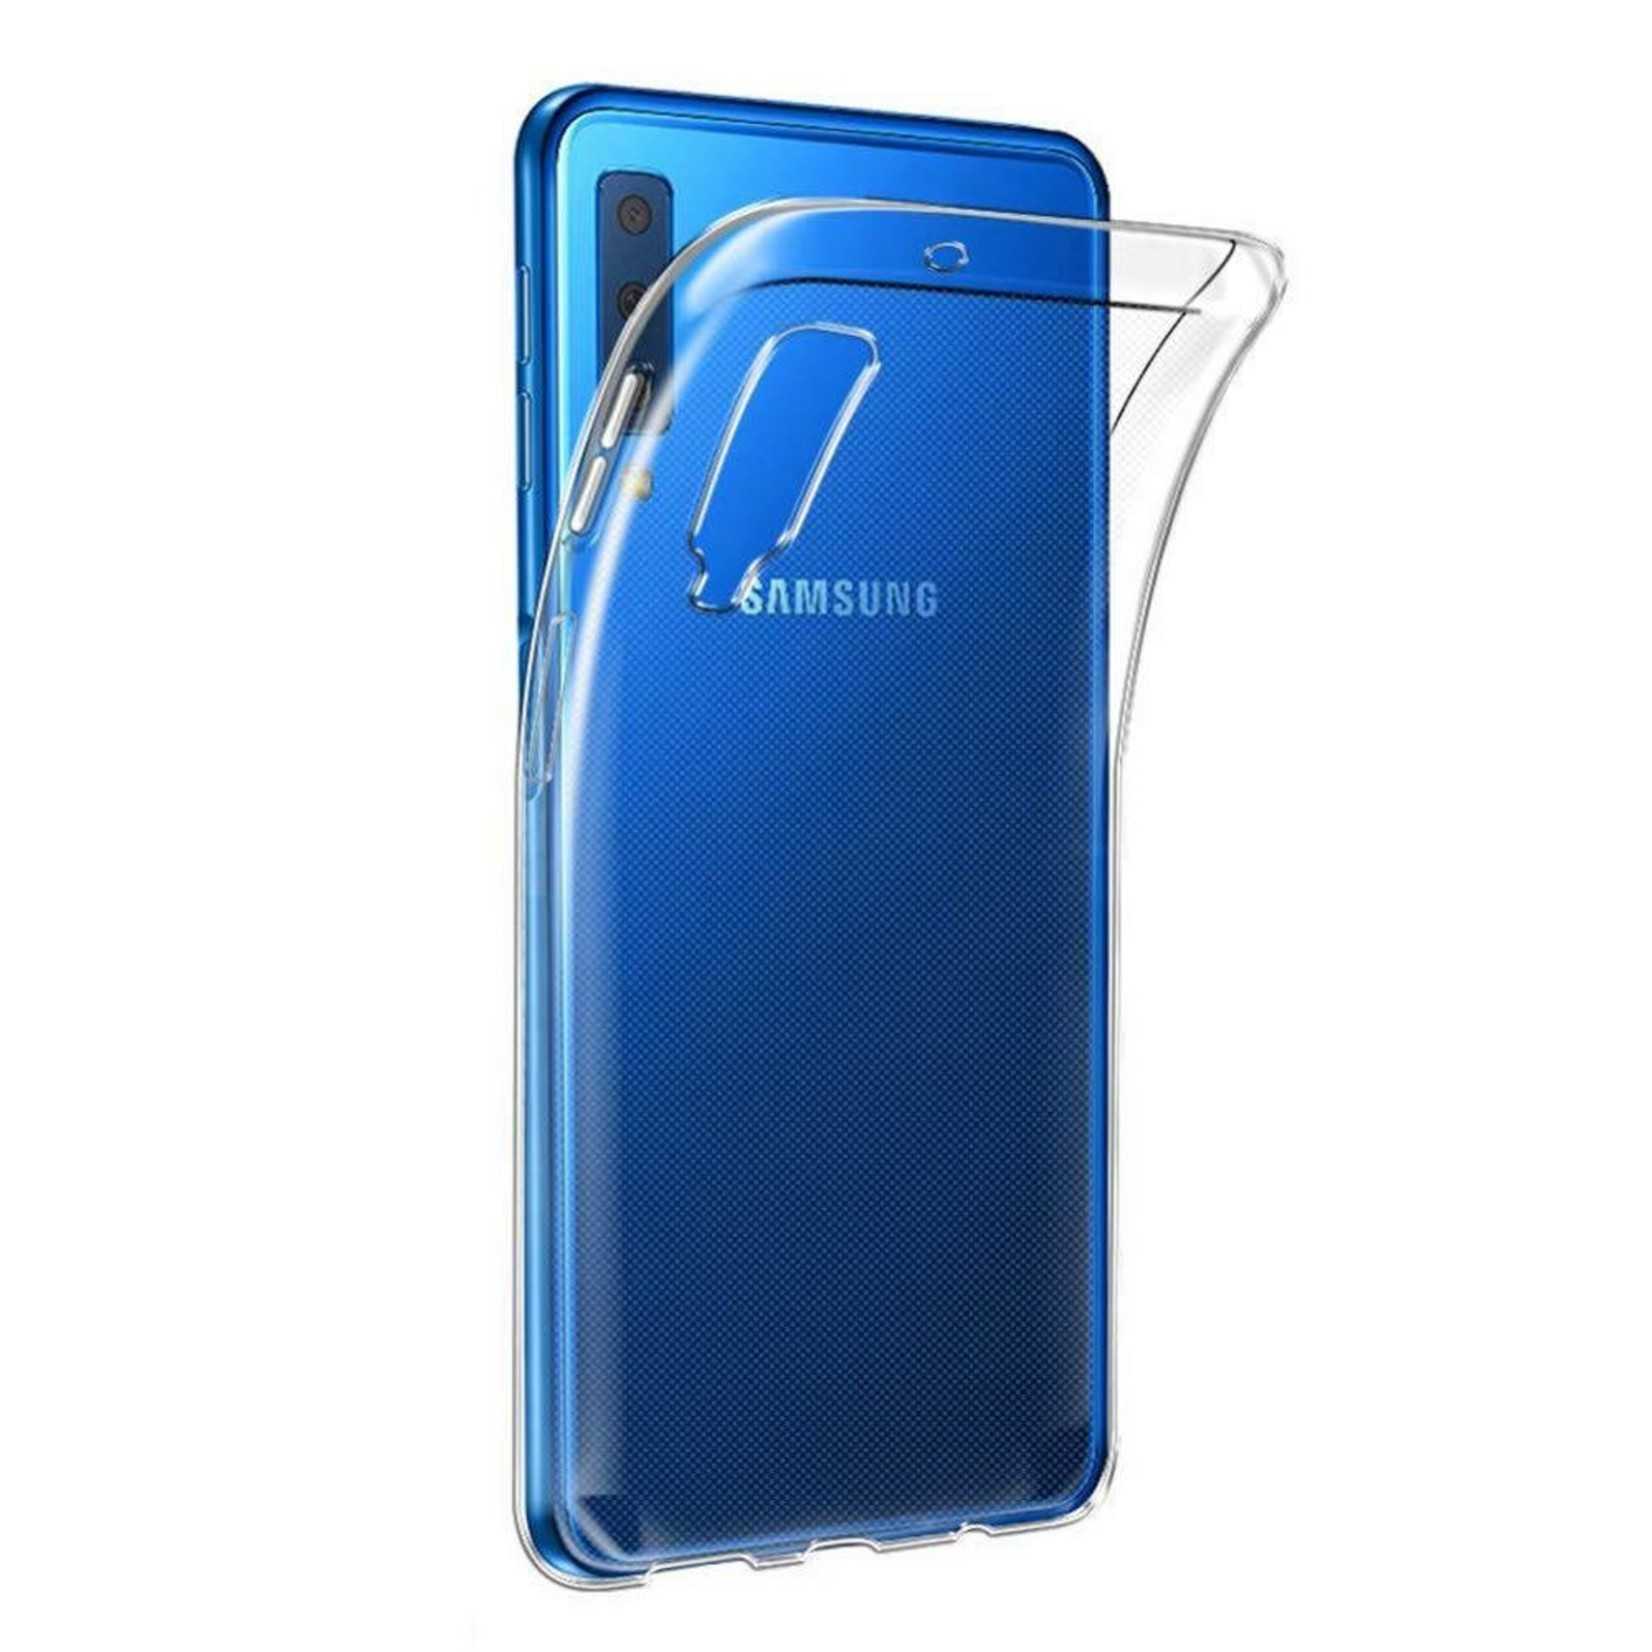 Colorfone Hoesje Coolskin3T voor Samsung A7 2018 Transparant Wit